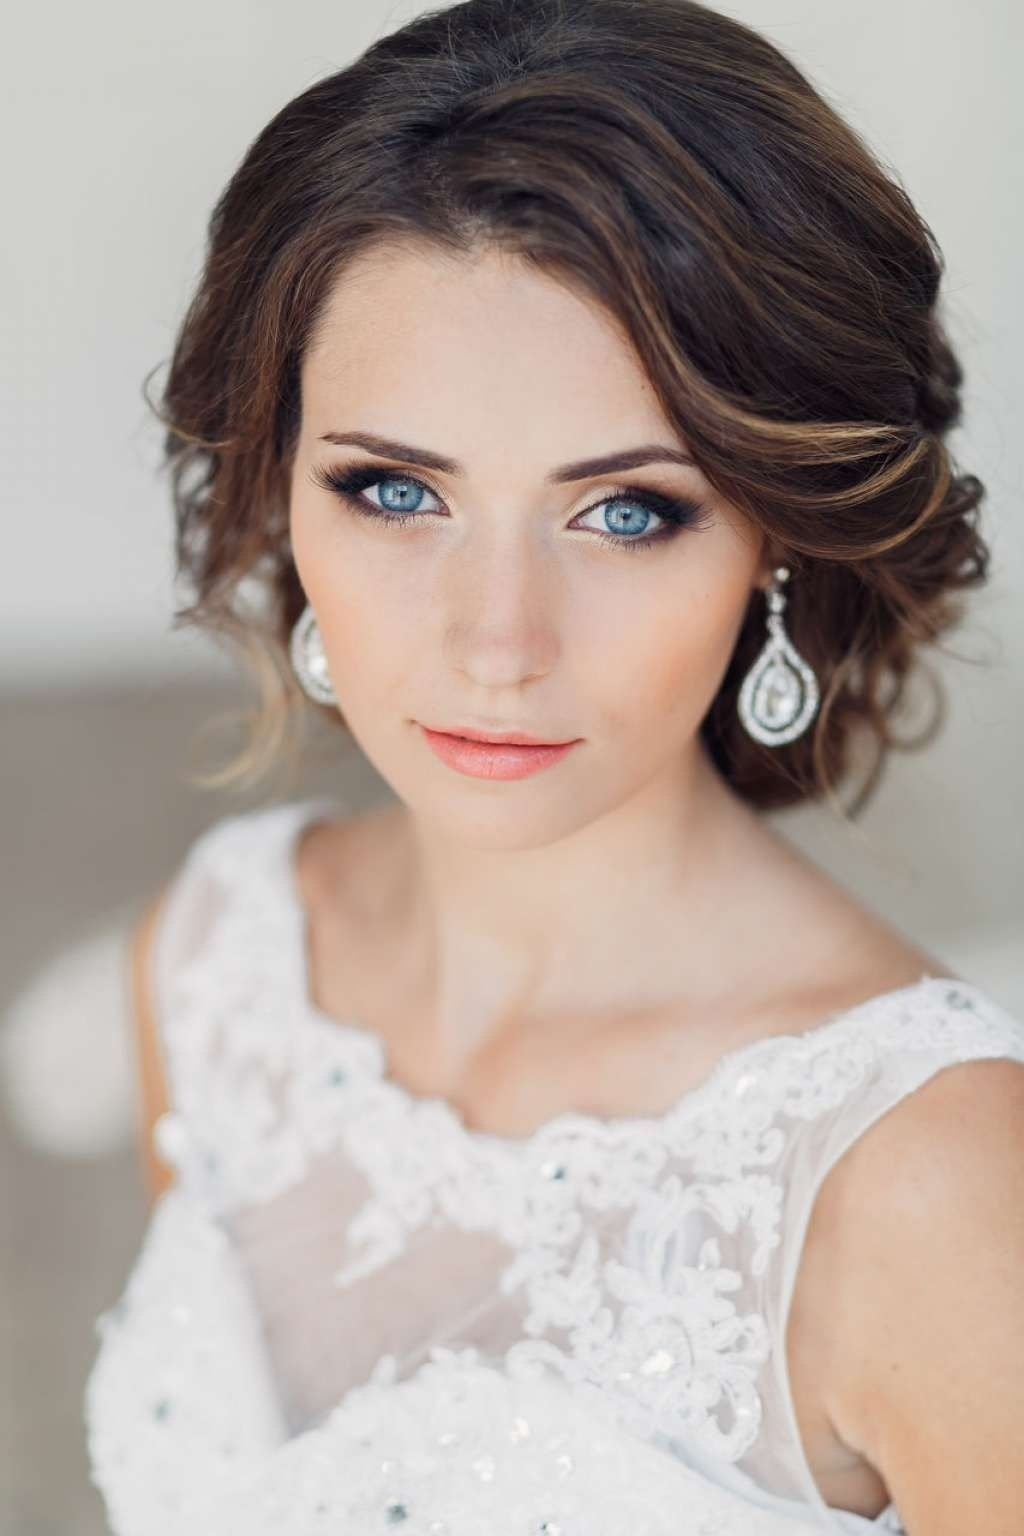 Bridal Makeup For Blue Eyes And Dark Hair :: One1Lady :: #hair regarding Wedding Makeup Blue Eyes Brown Hair